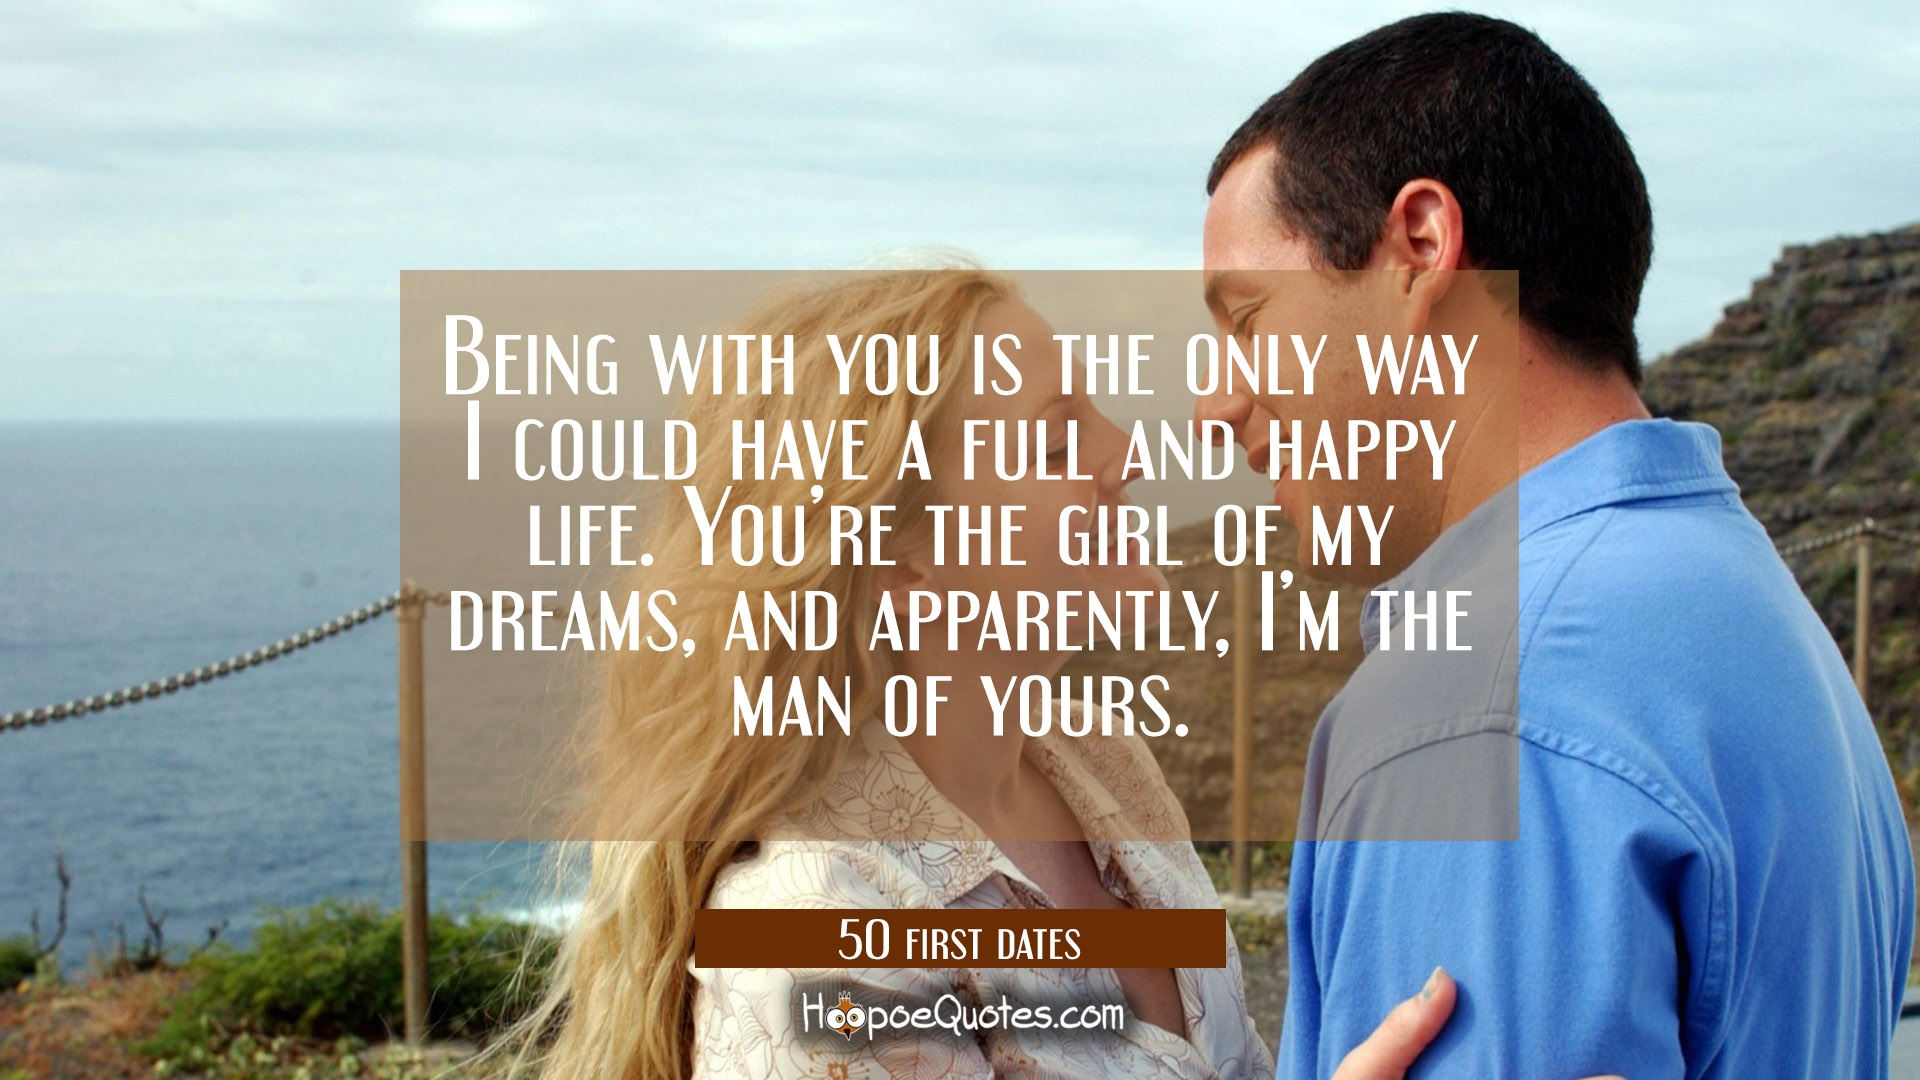 Being With You Is The Only Way I Could Have A Full And Happy Life